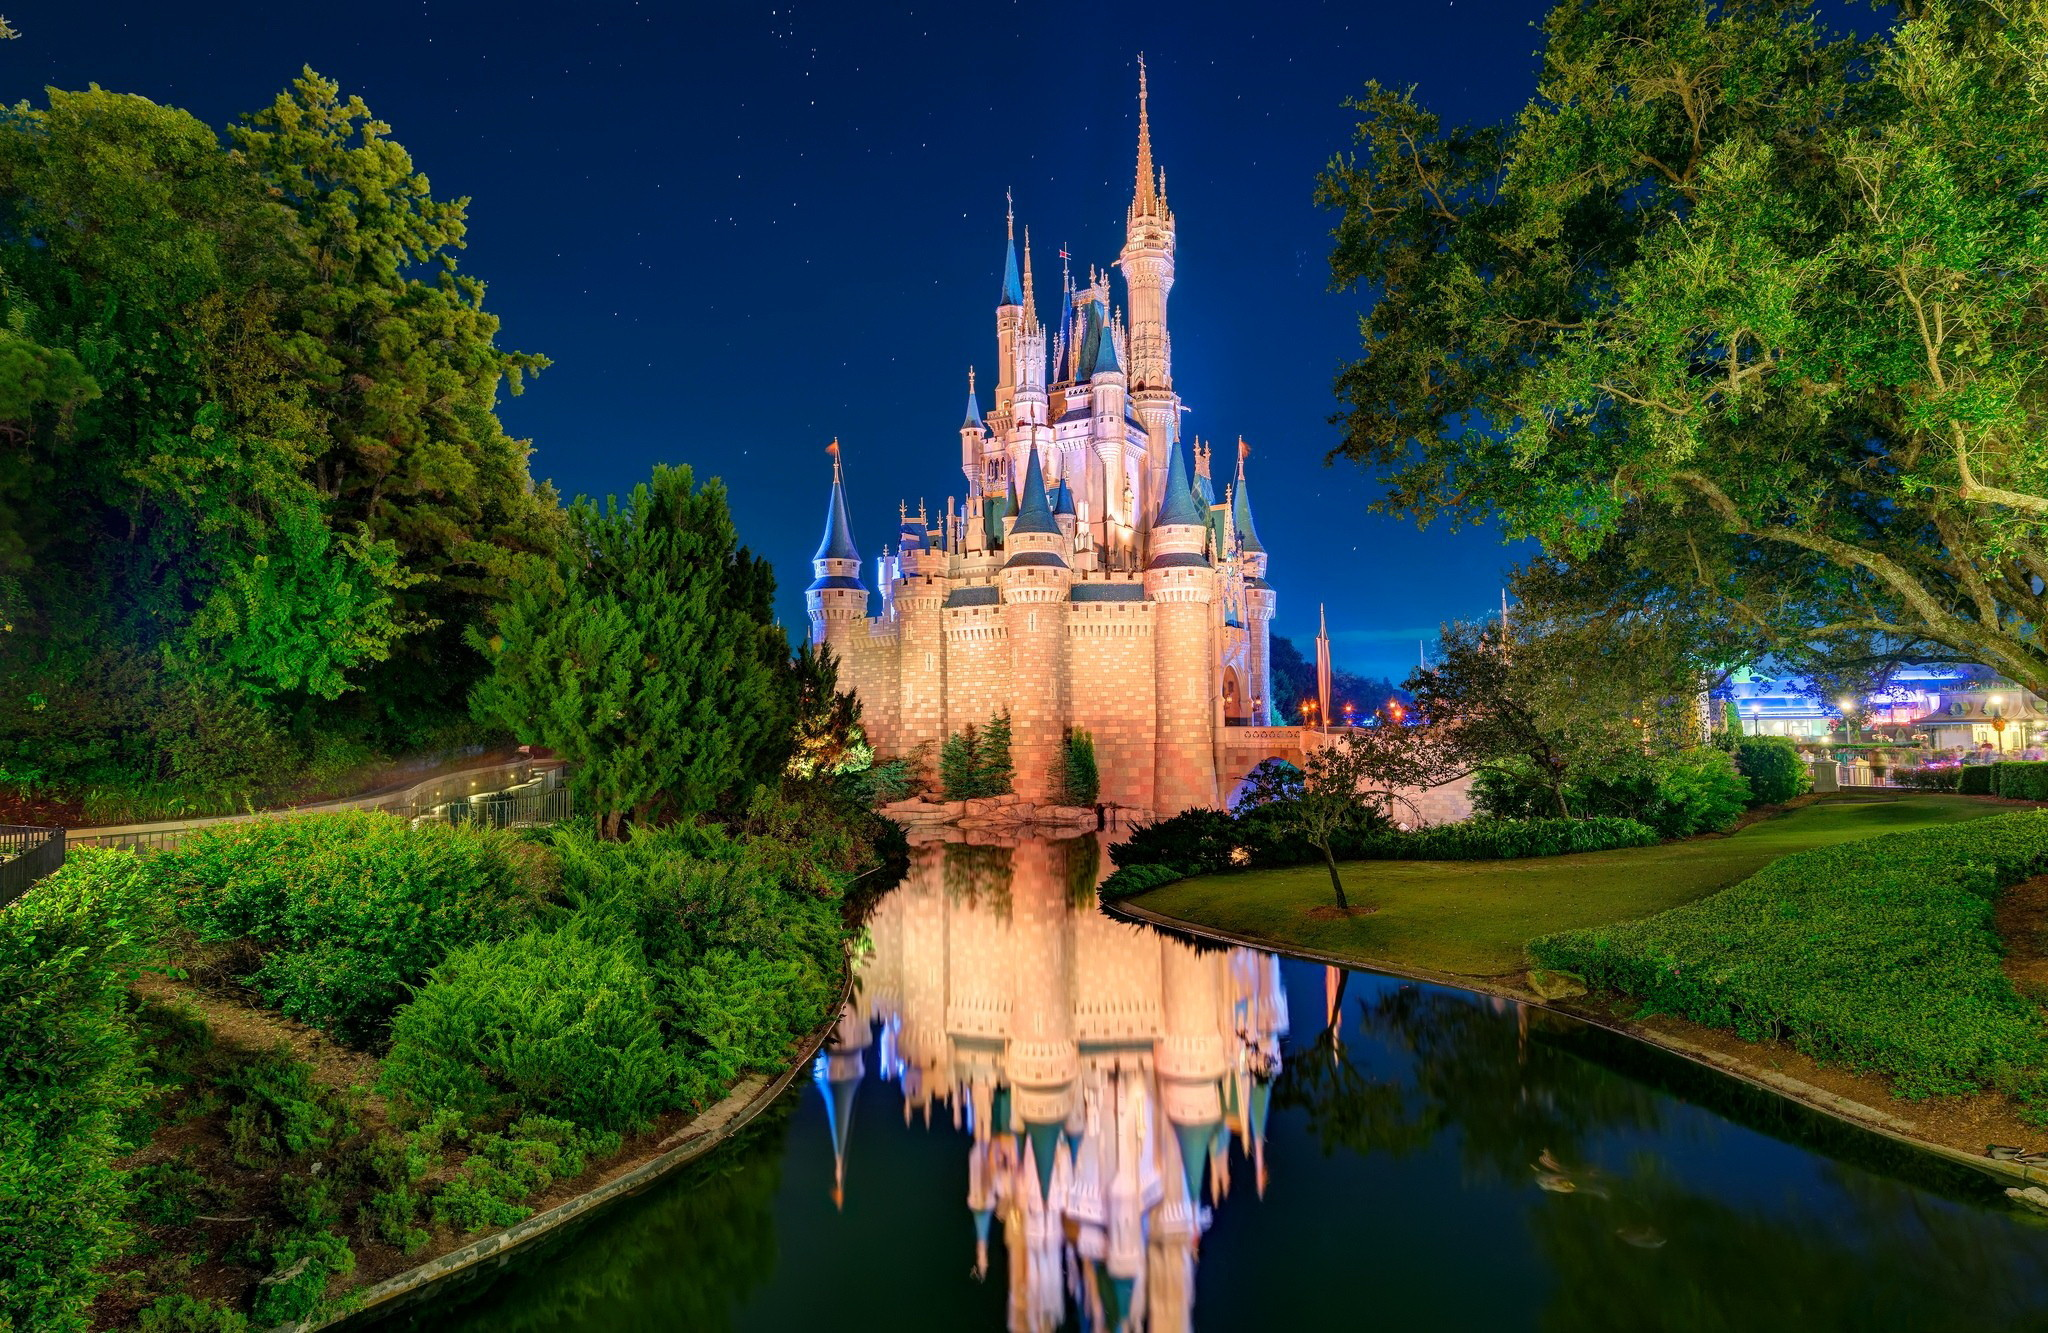 2048x1333 disney world castle wallpaper